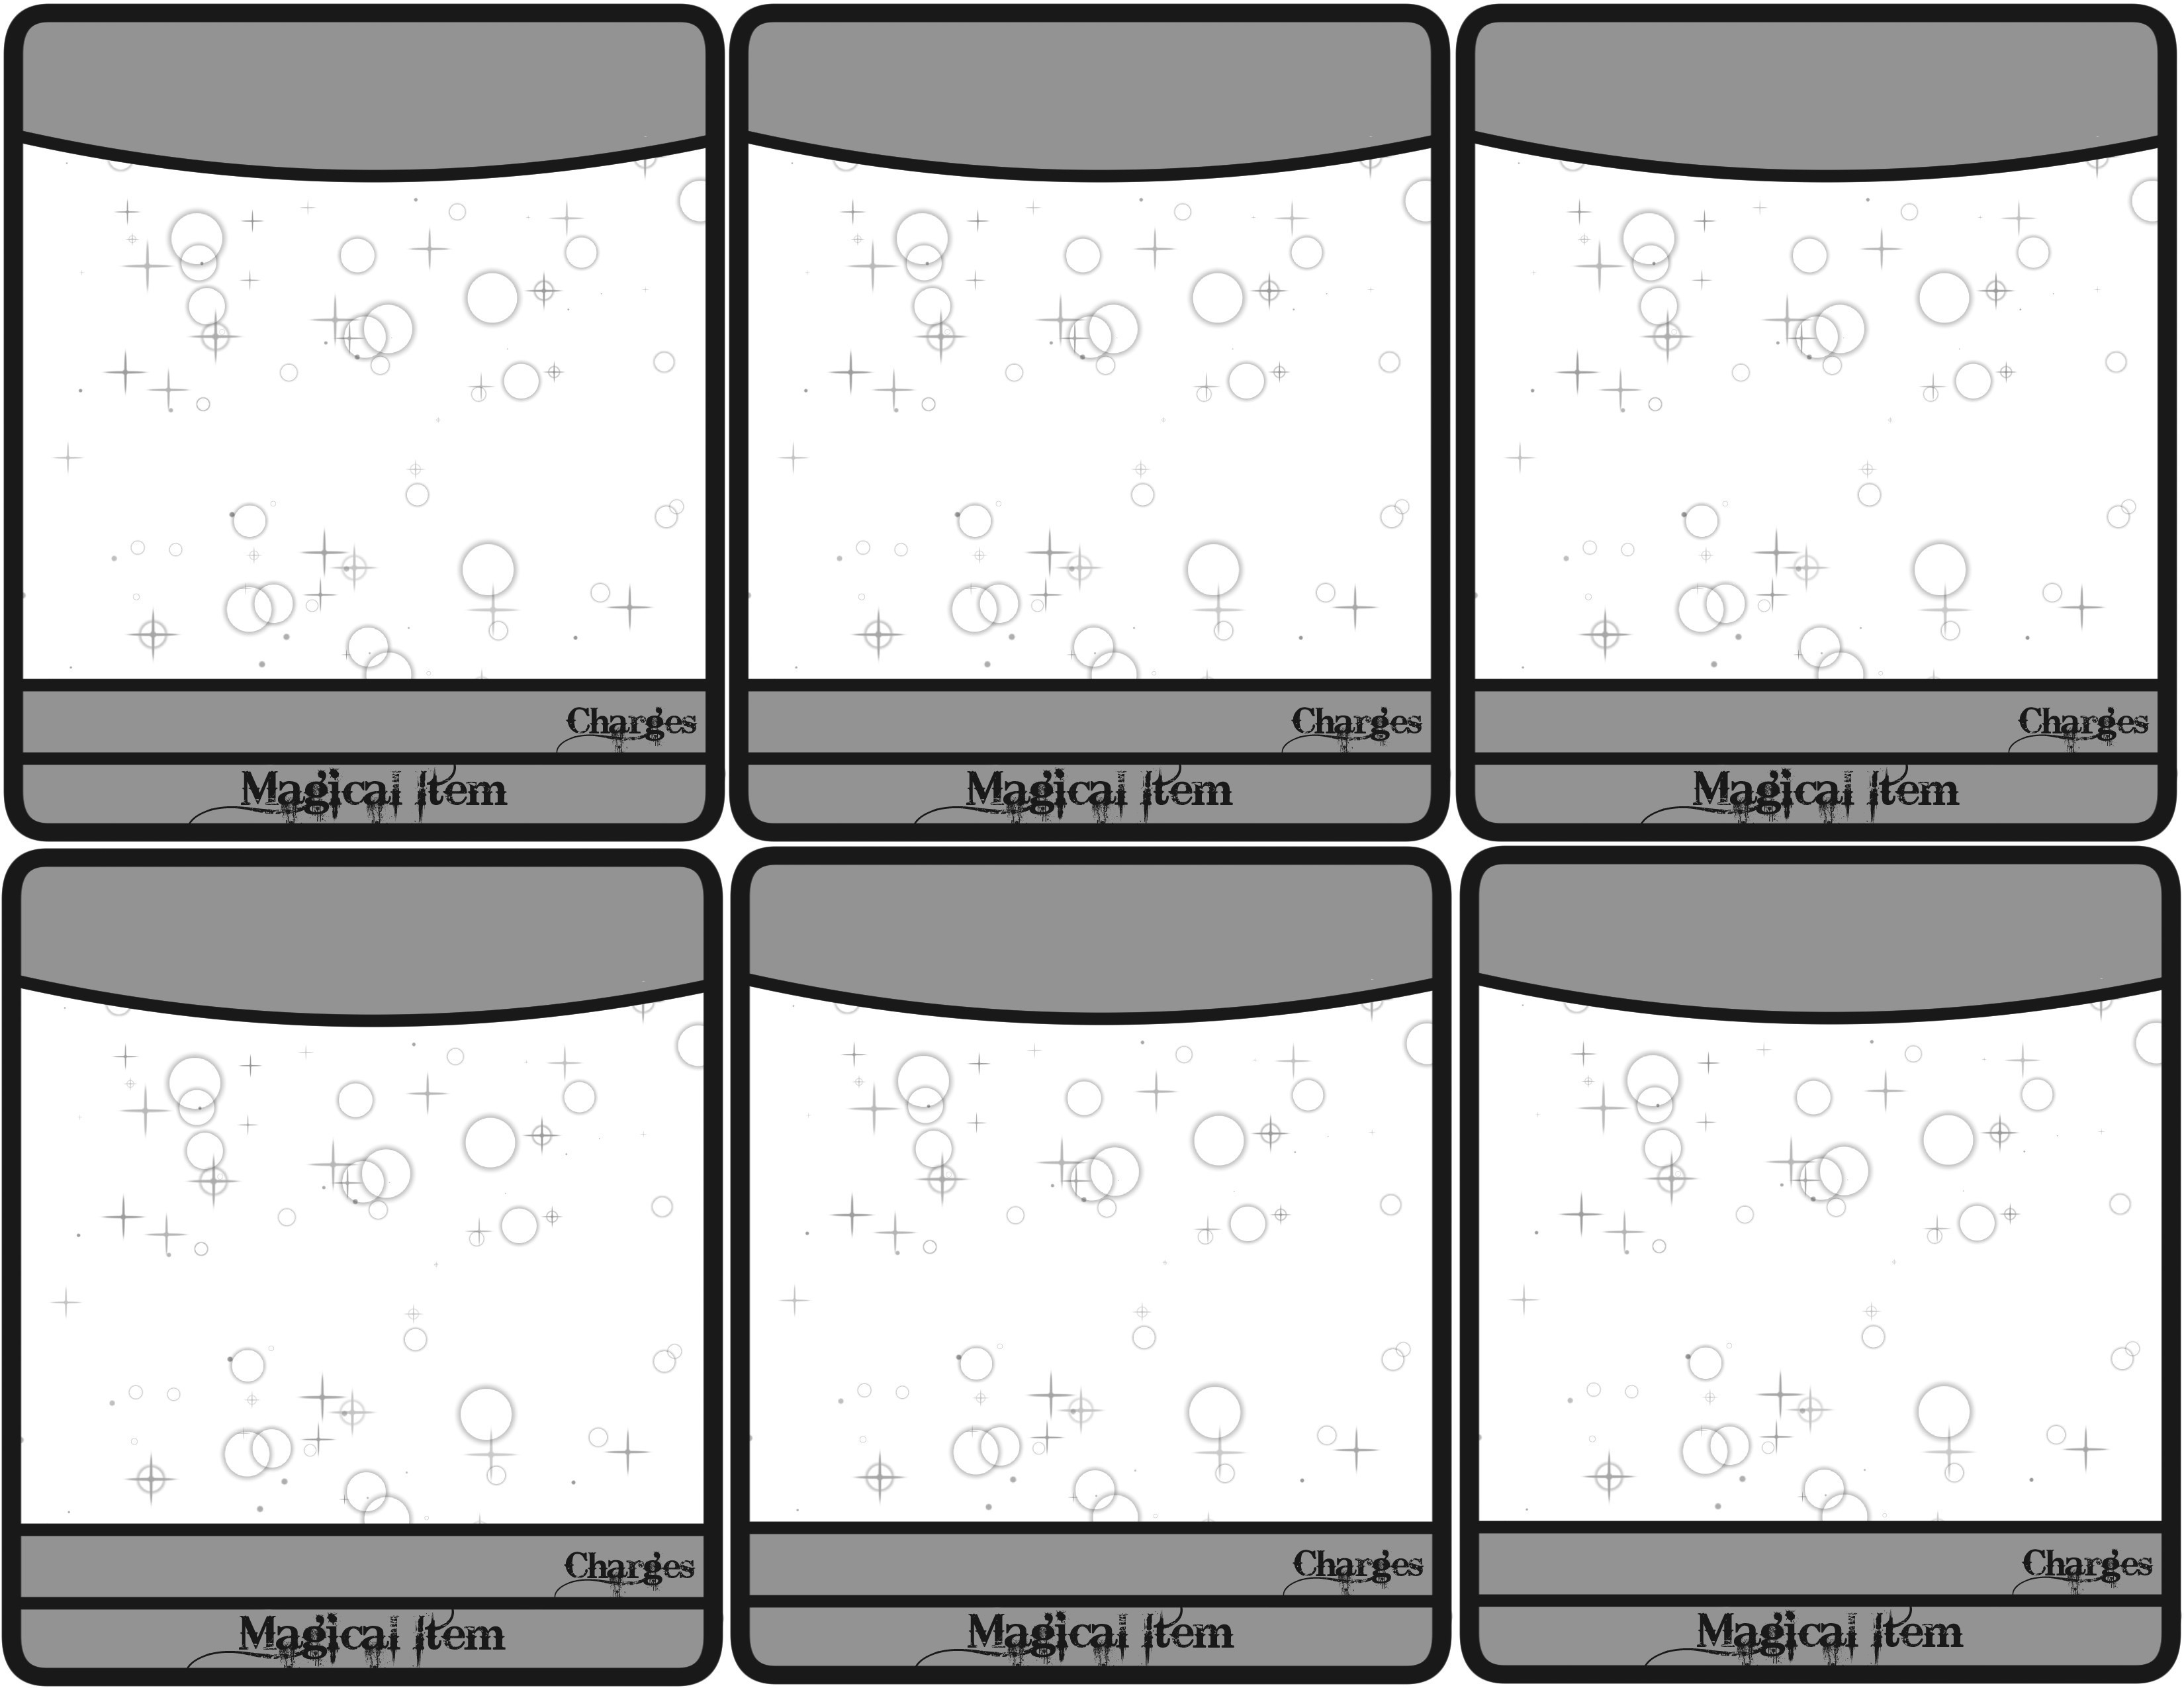 Mtg Spreadsheet Pertaining To Itto Spreadsheet Elegant Enchanting Mtg Card Template Sketch Entry